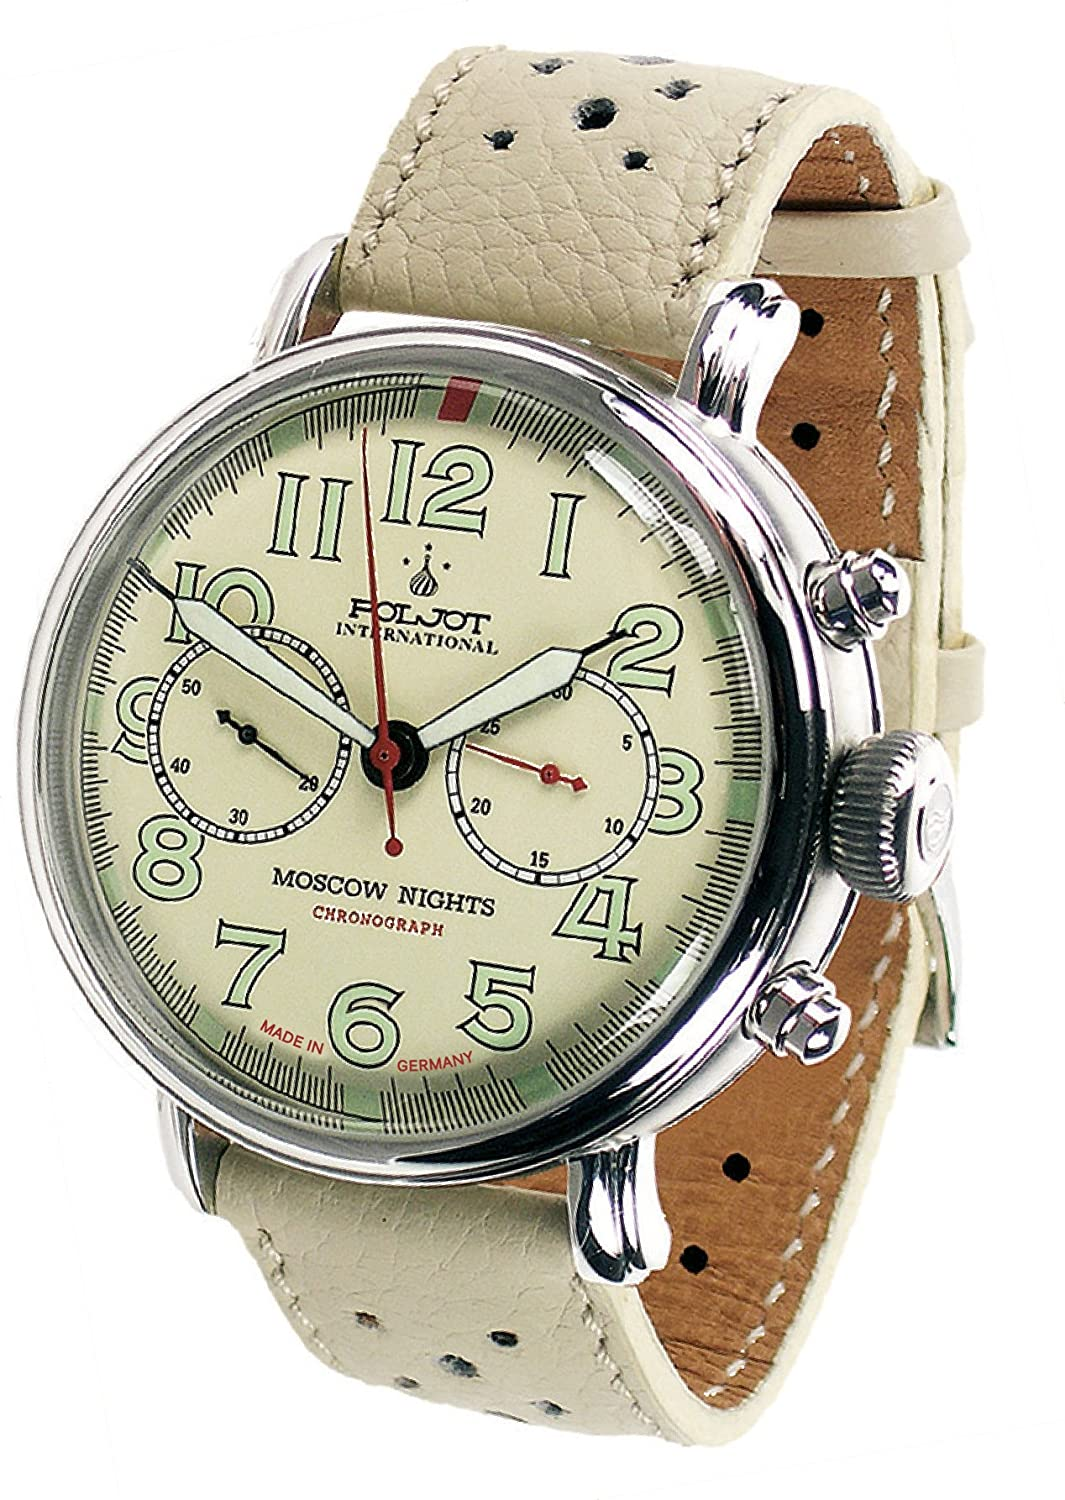 POLJOT Int Chronograph Herrenuhr Moscow Nights Handaufzug Mechanisch Lederband Russian Watch